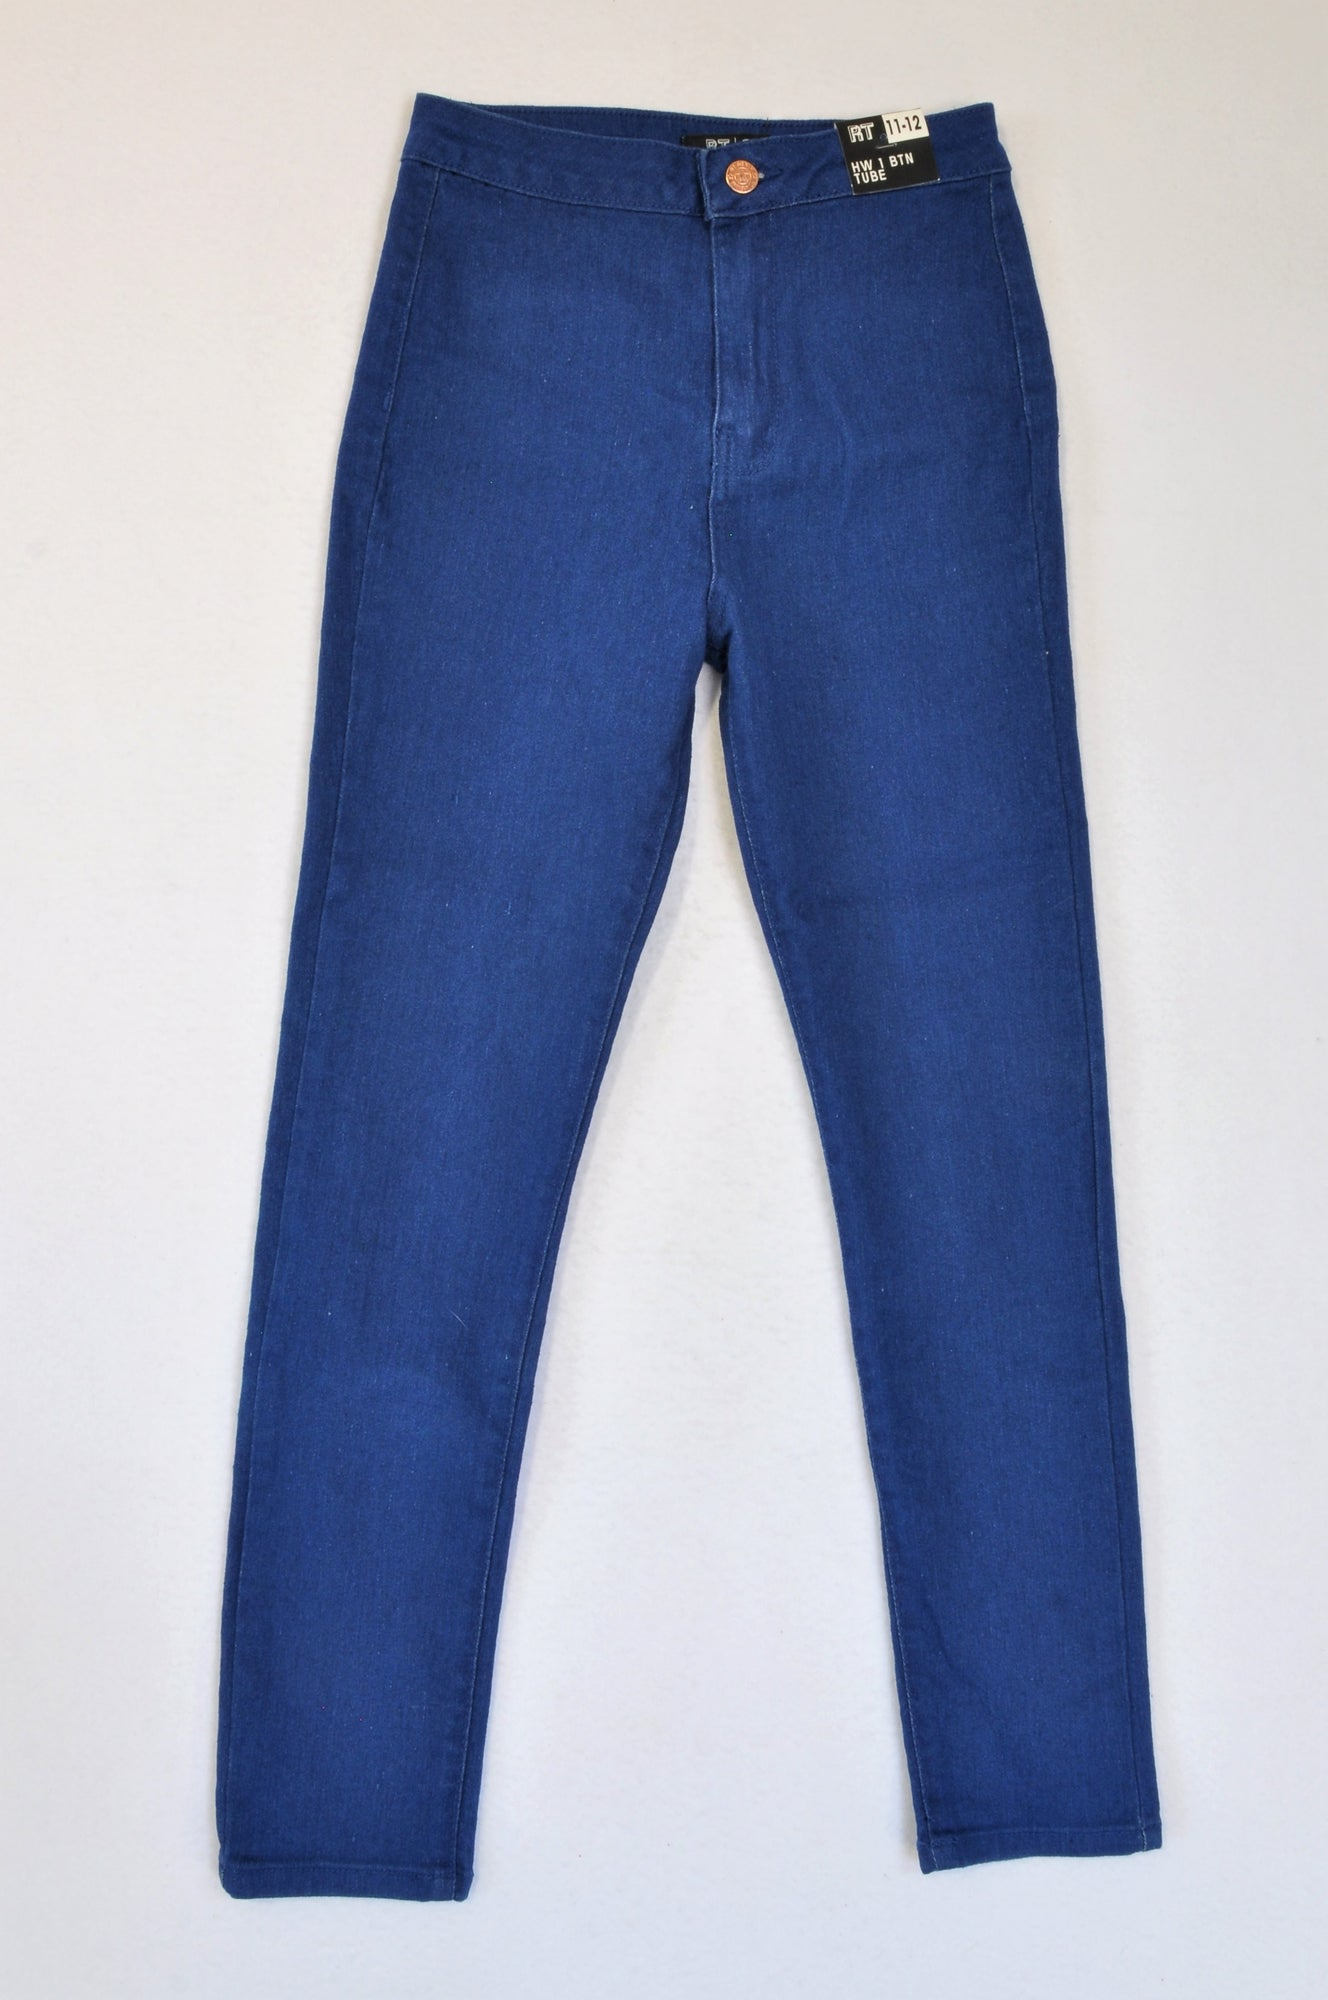 New Mr. Price Medium Wash High Waisted Jeans Girls 11-12 years